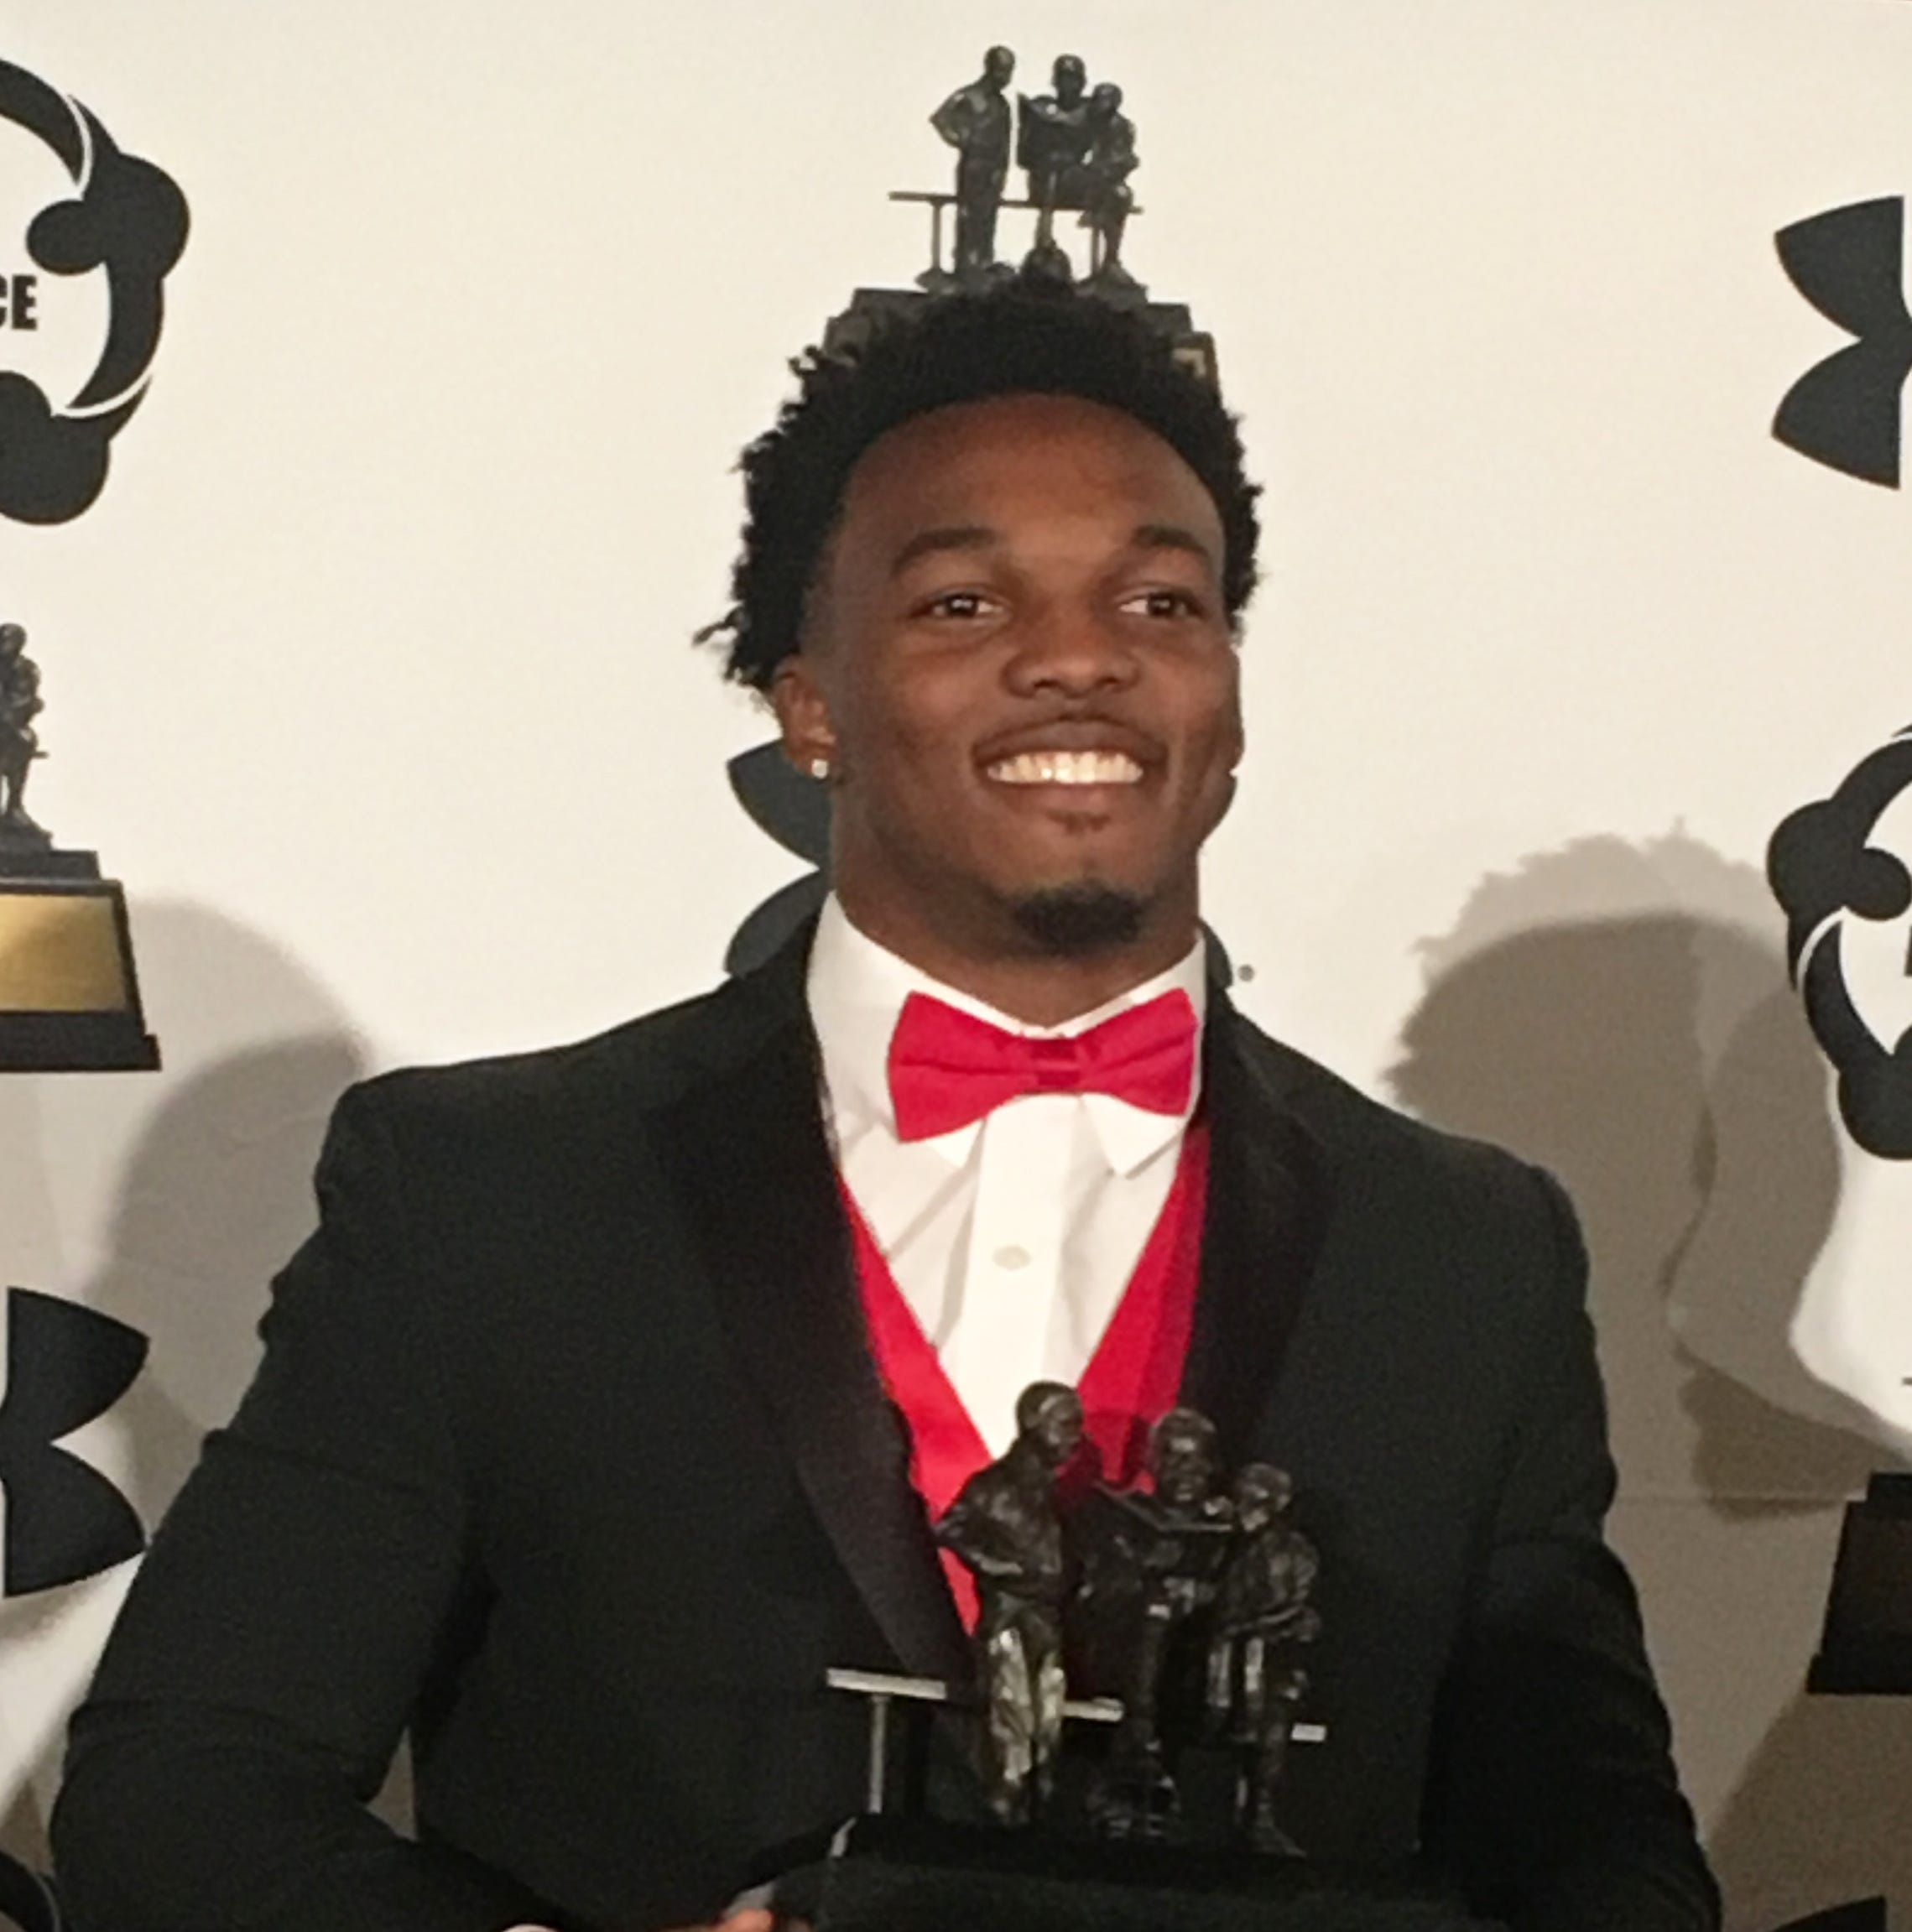 Horn Lake's Nakobe Dean wins Watkins Award for top African-American scholar athlete